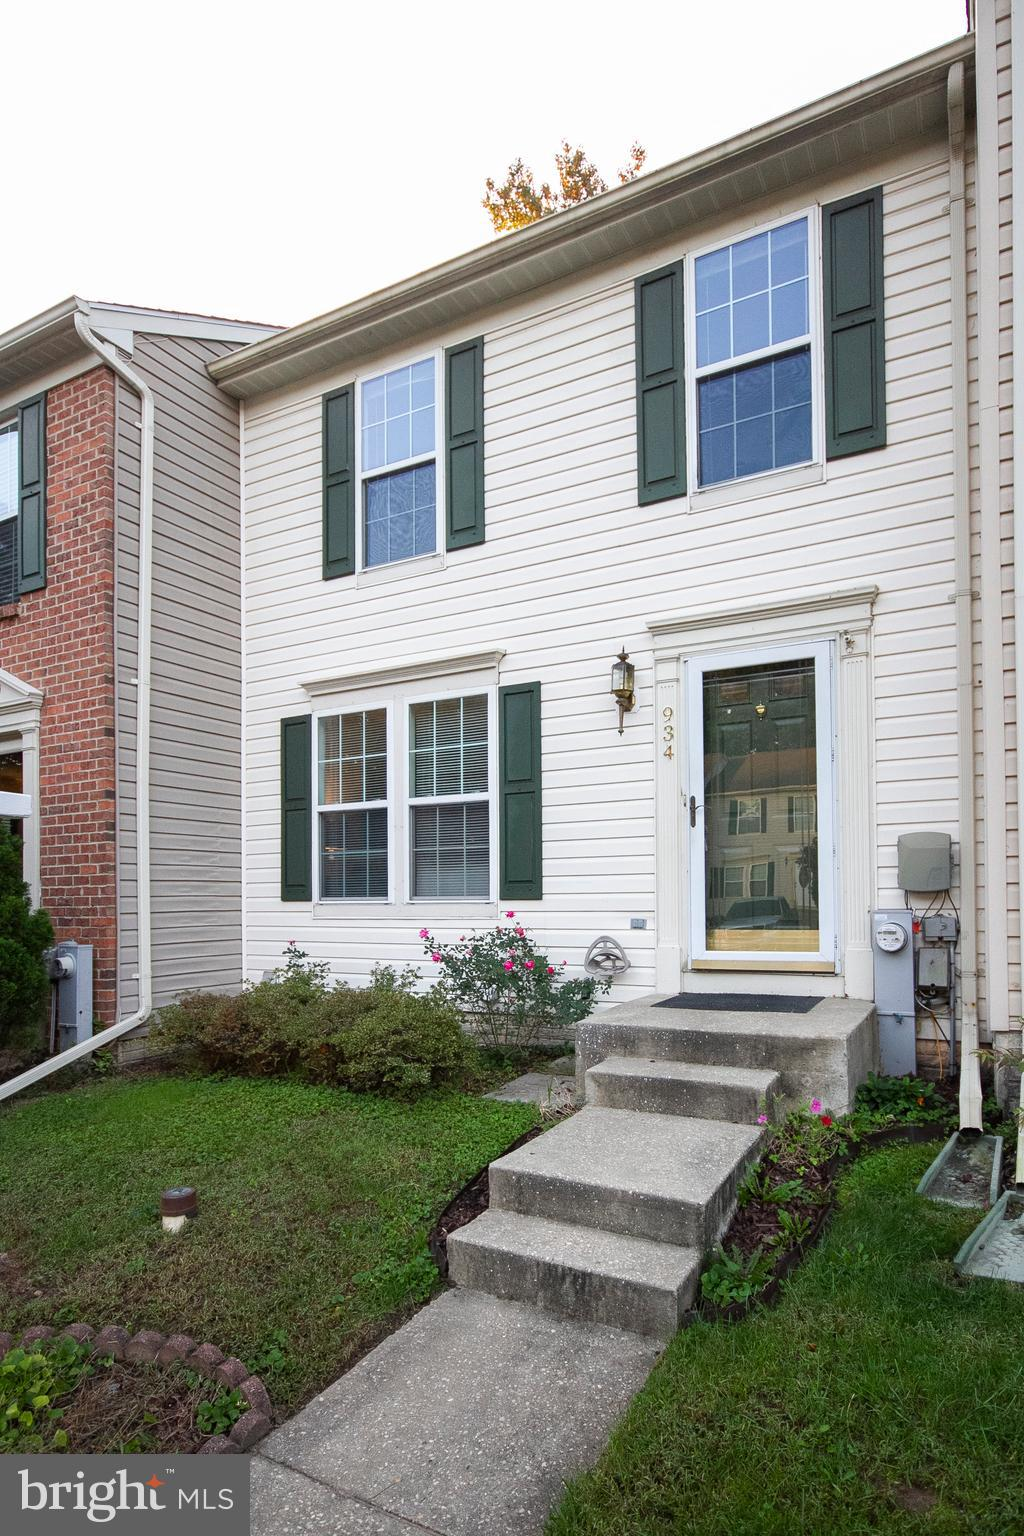 934 CHESTNUT WOOD COURT, CHESTNUT HILL COVE, MD 21226